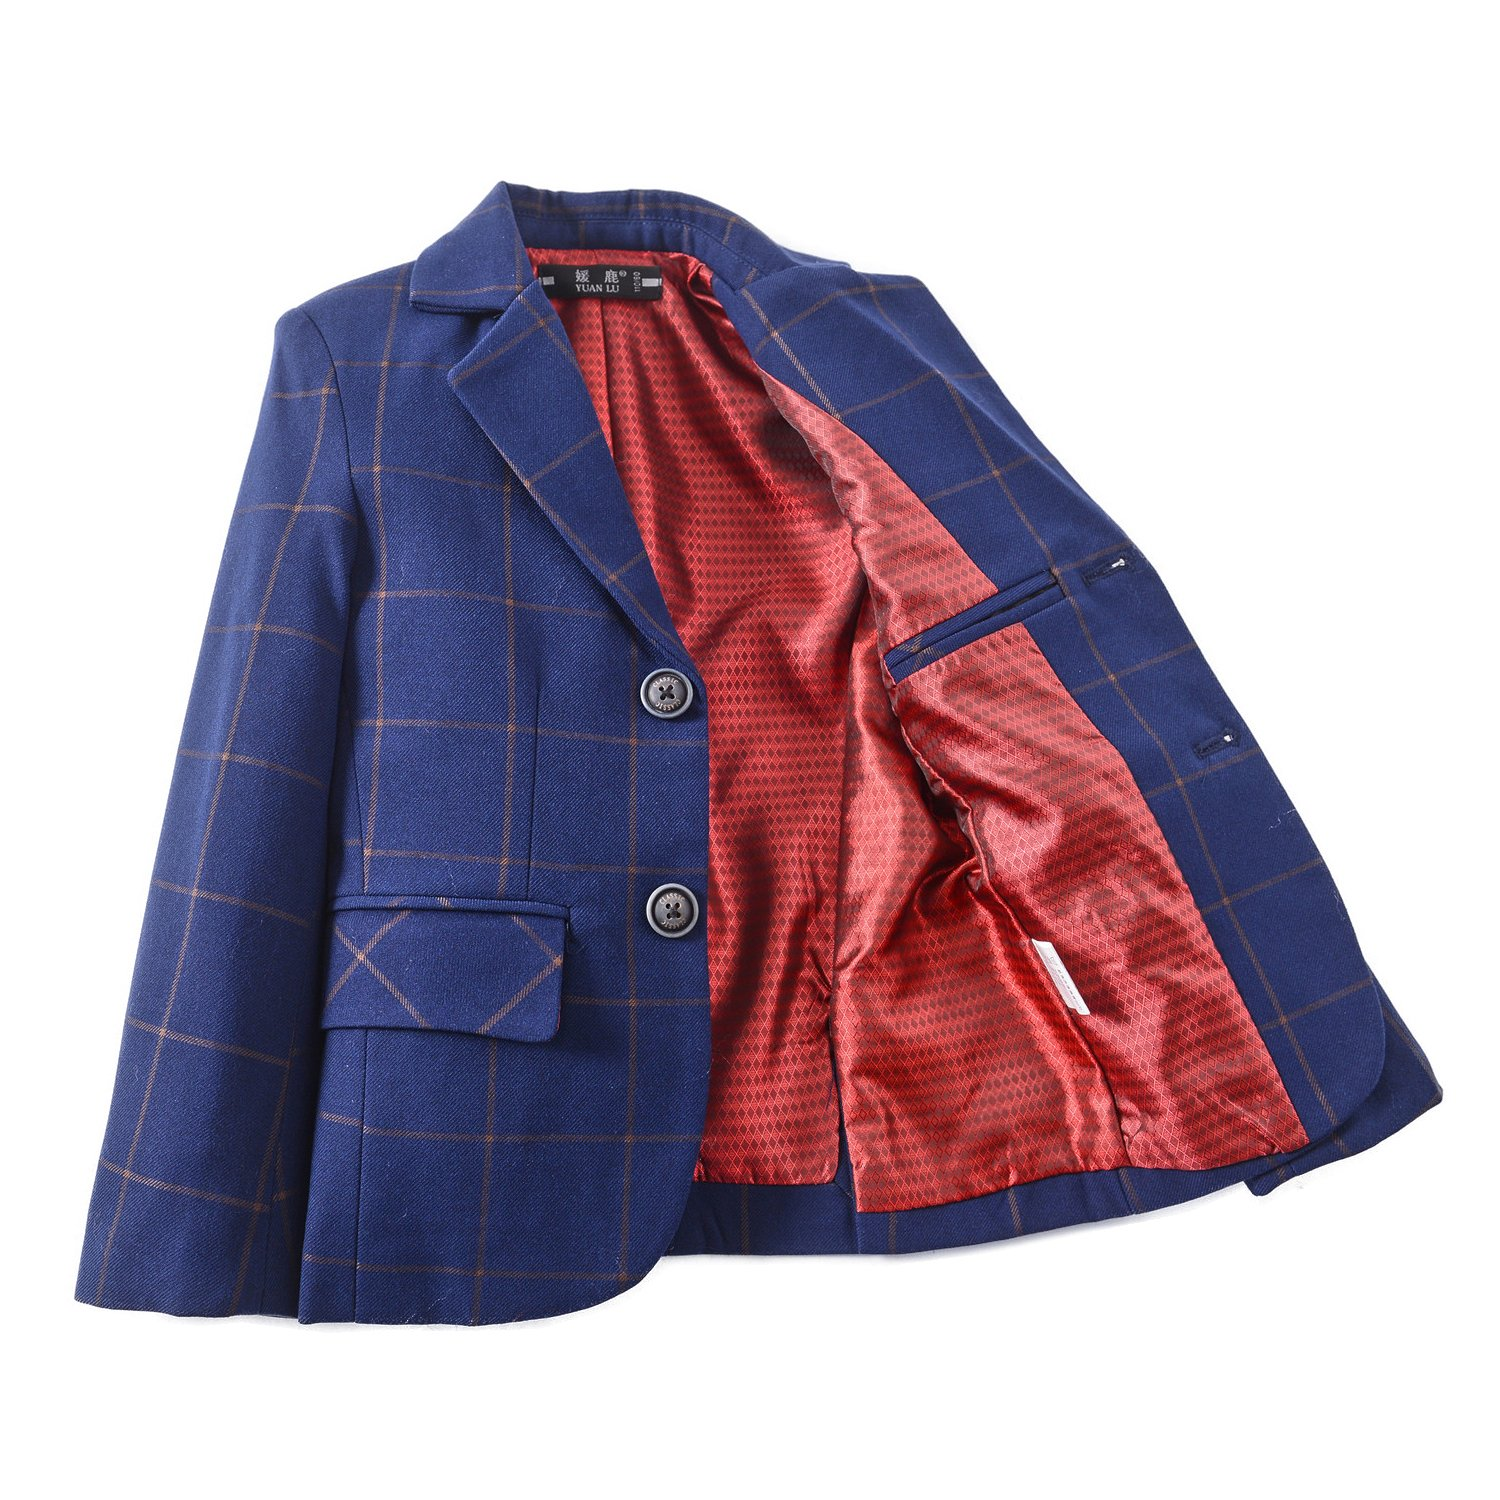 YuanLu Boys Plaid Tuxedo Suits Kids Outfit Jacket For Weddings Size 12 Navy Blue by YuanLu (Image #3)